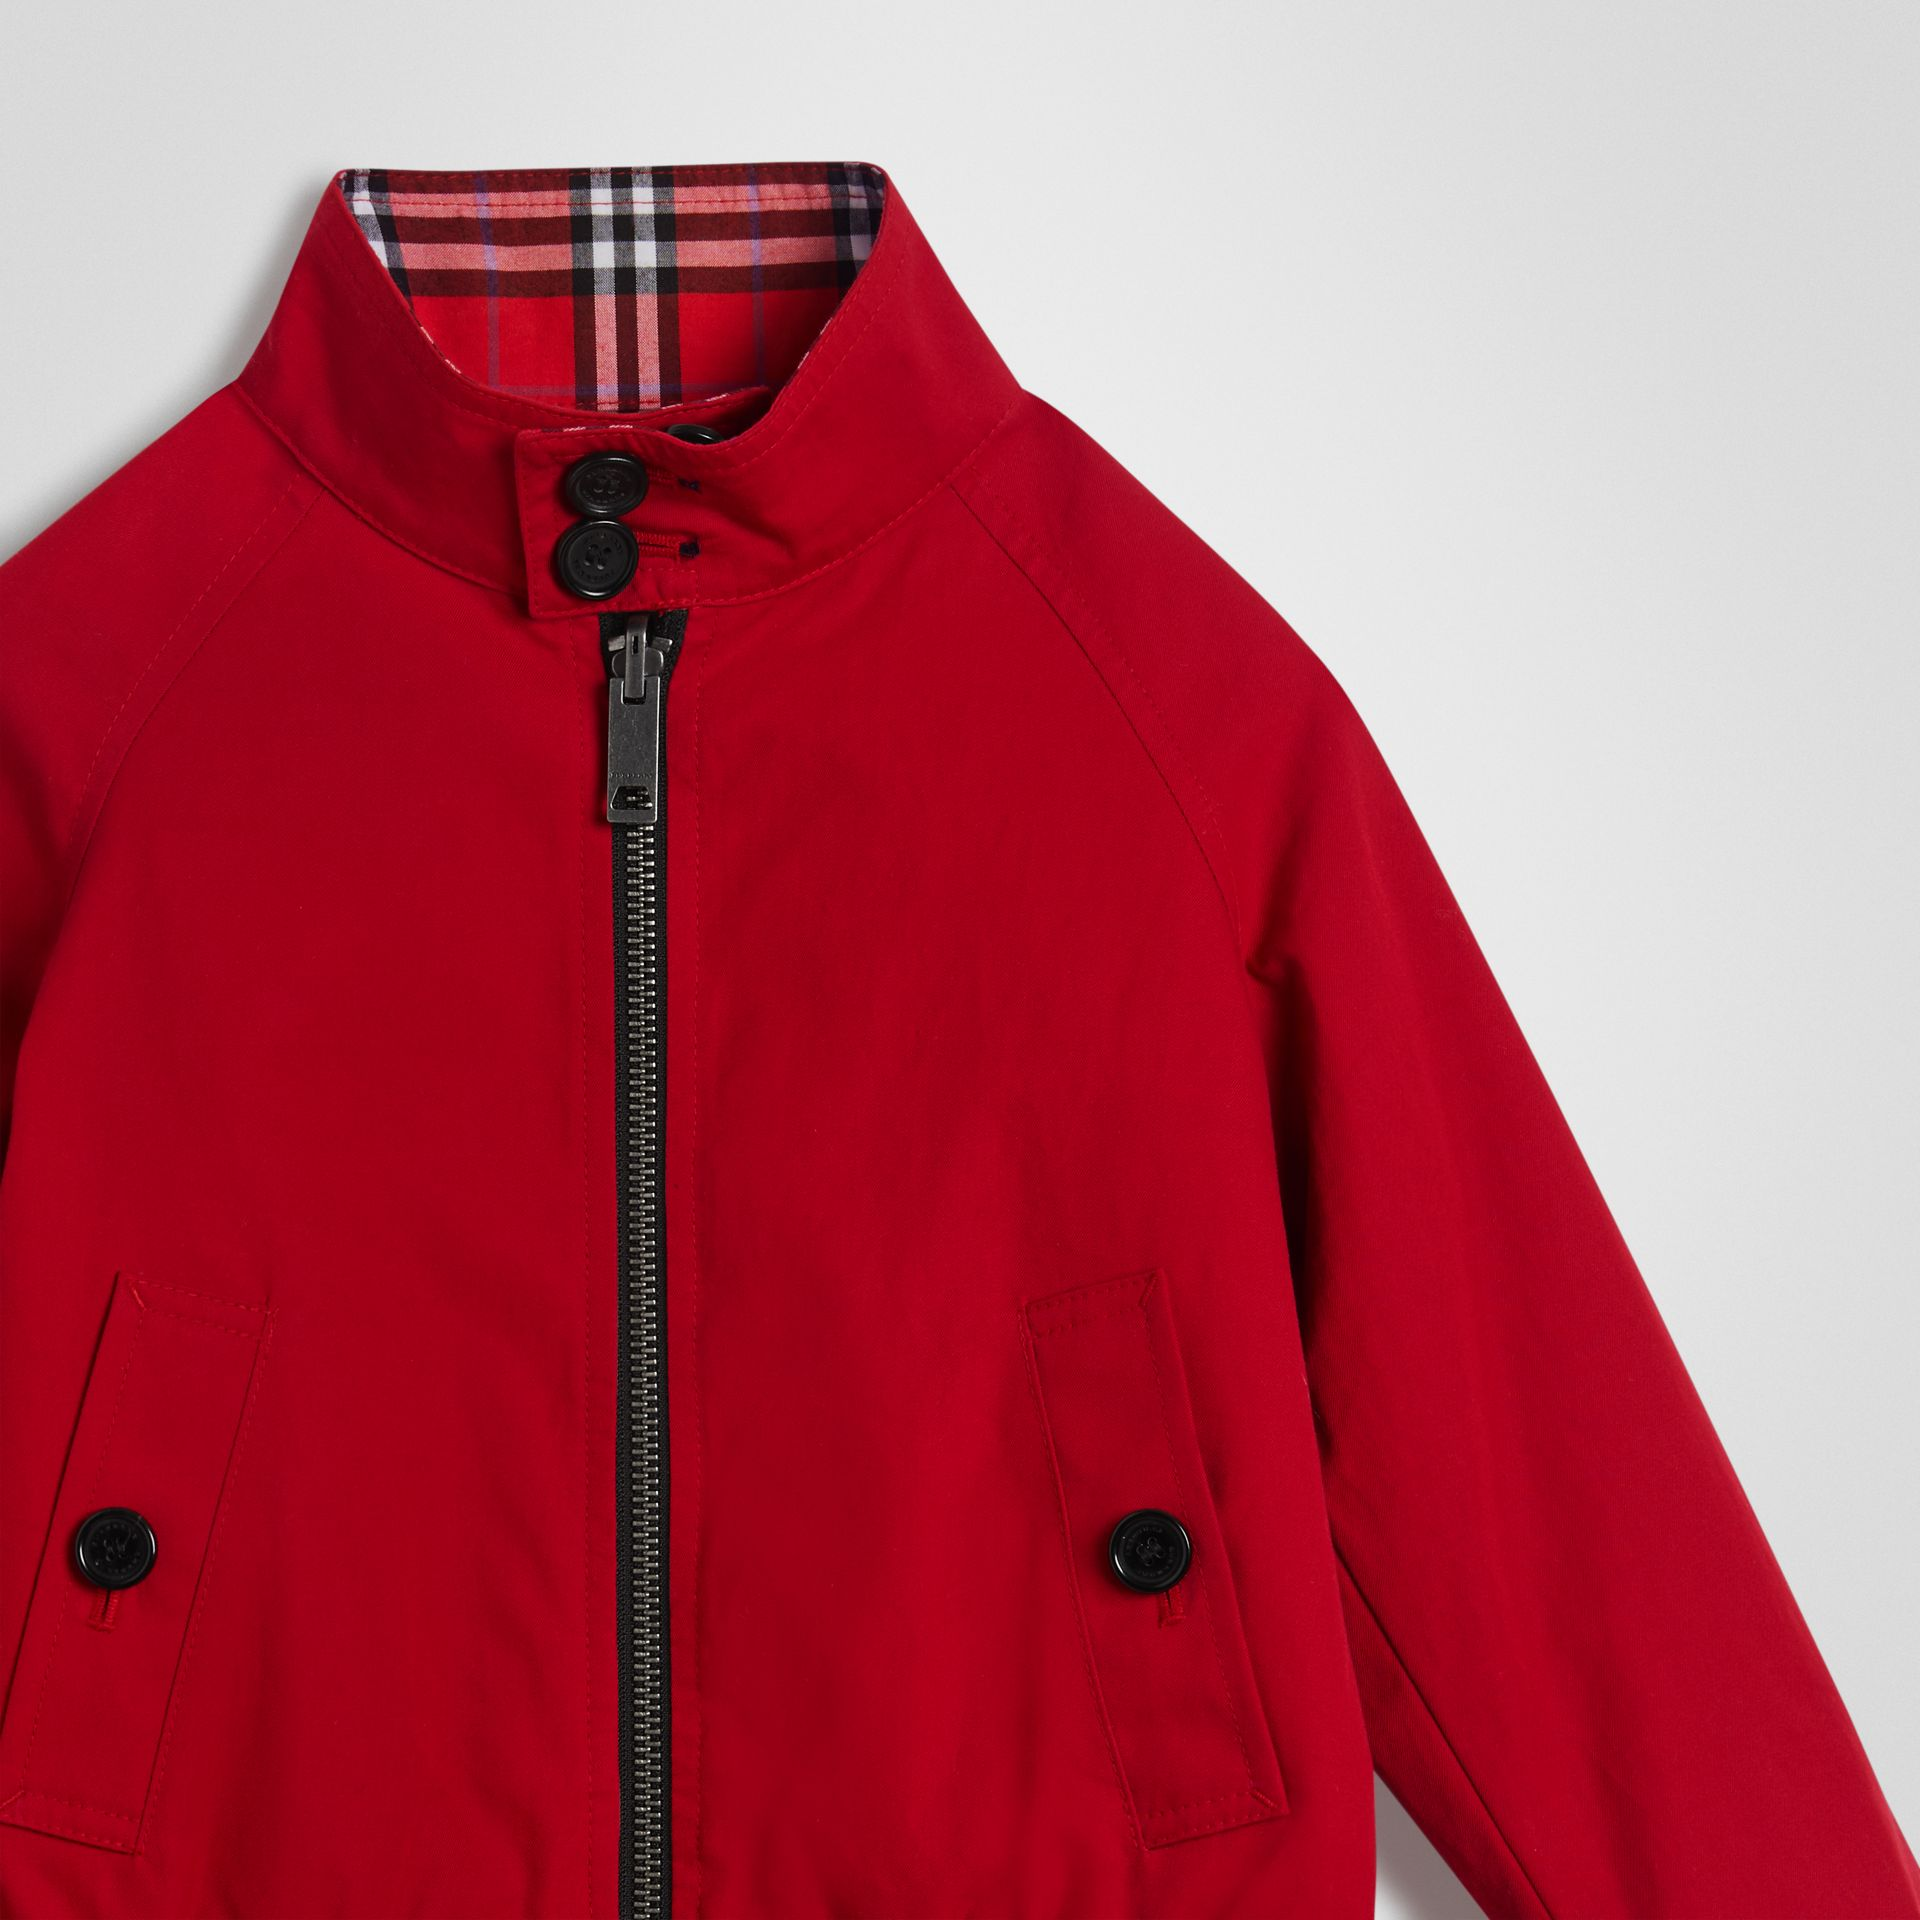 Reversible Check Cotton Harrington Jacket in Bright Red | Burberry - gallery image 5